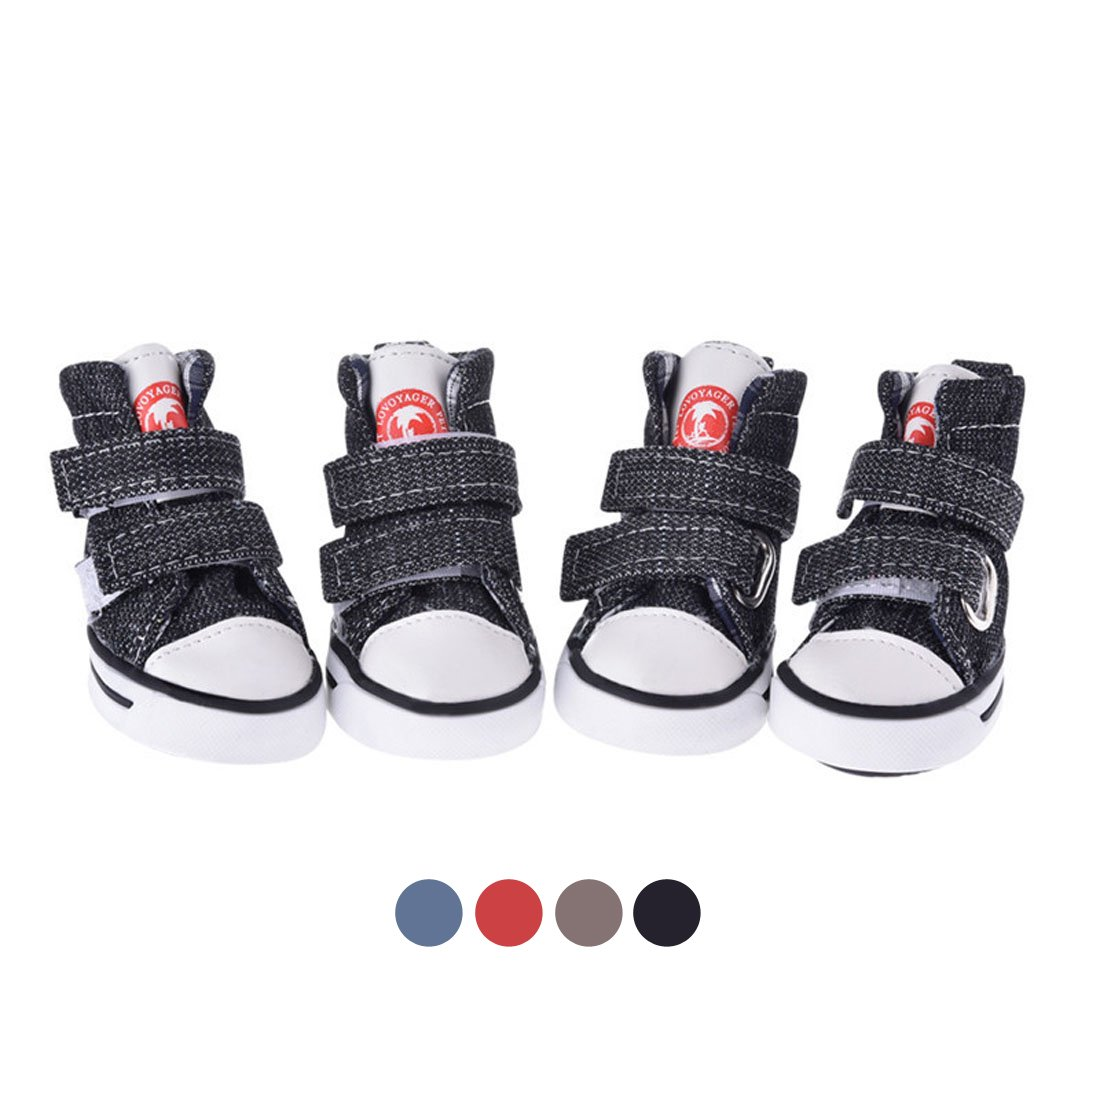 Gabefish Dog Shoes Sneaker Pet Velcro Canvas Shoes Chihuahua Puppy Nonslip Boots Sport Anti-Slip Paw Protector Black Medium